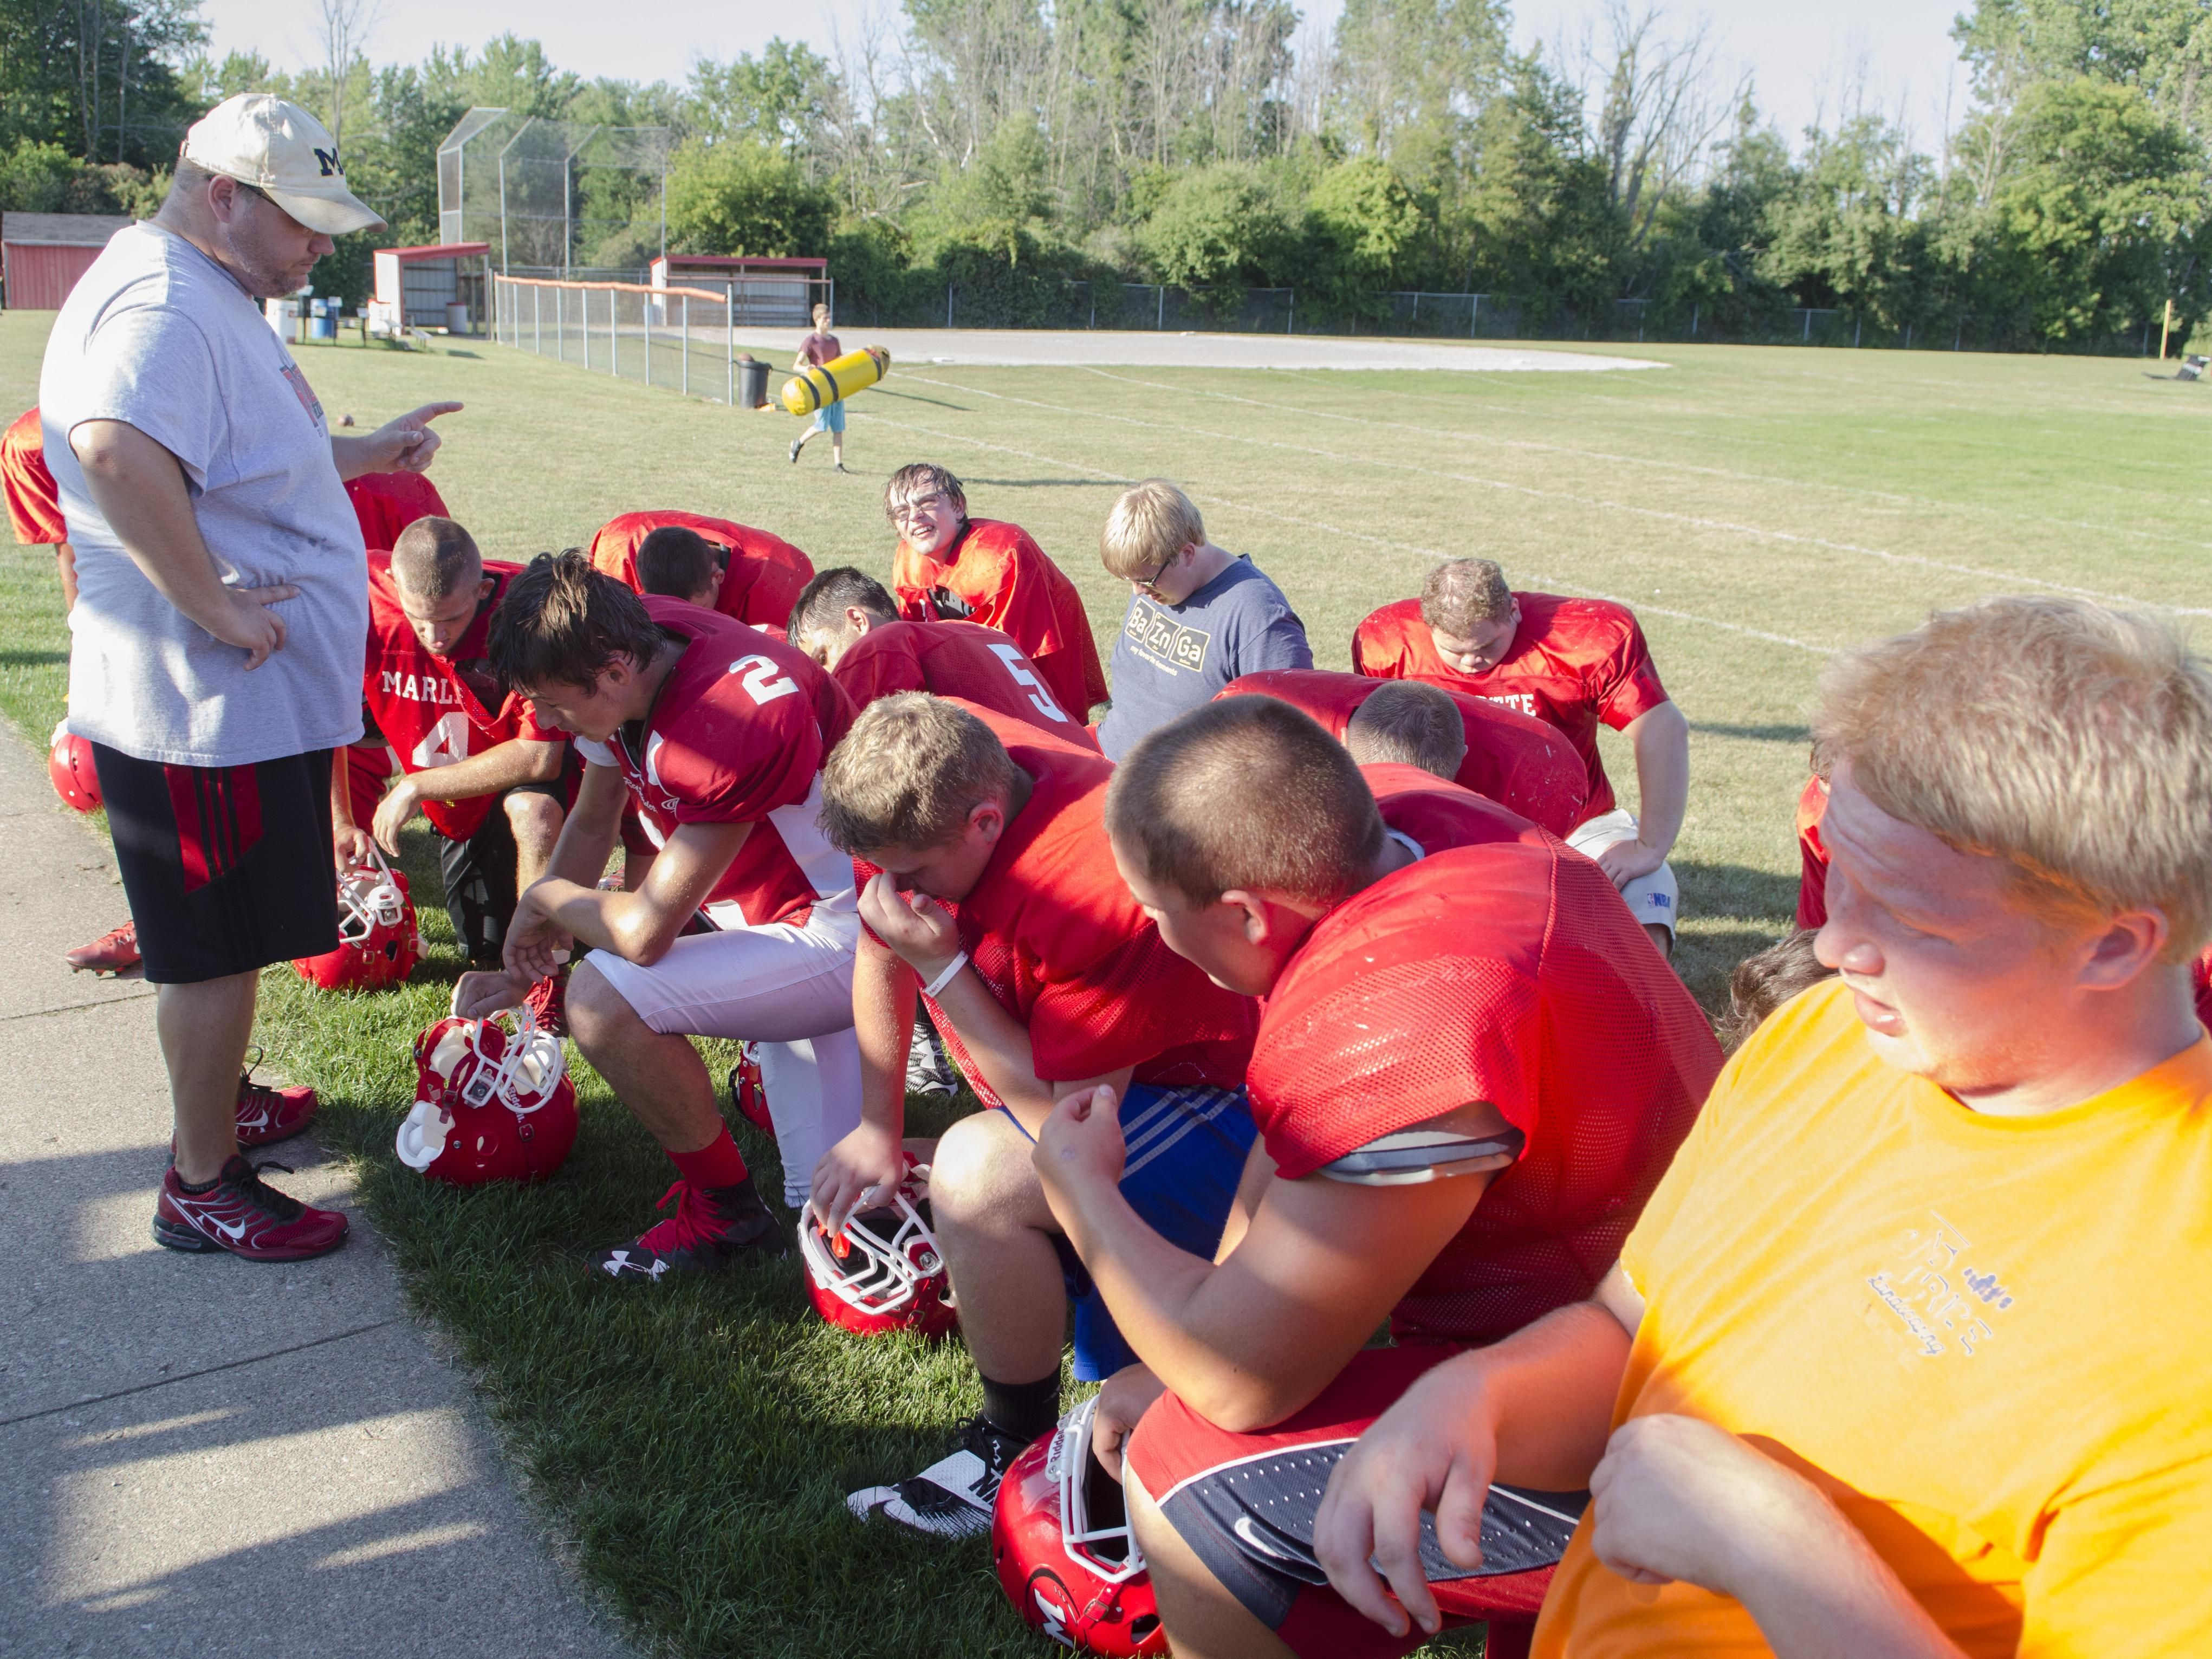 Marlette coach Dennis Lester talks to his players Wednesday, Aug. 10 , 2016 after their football practice at Marlette High School.